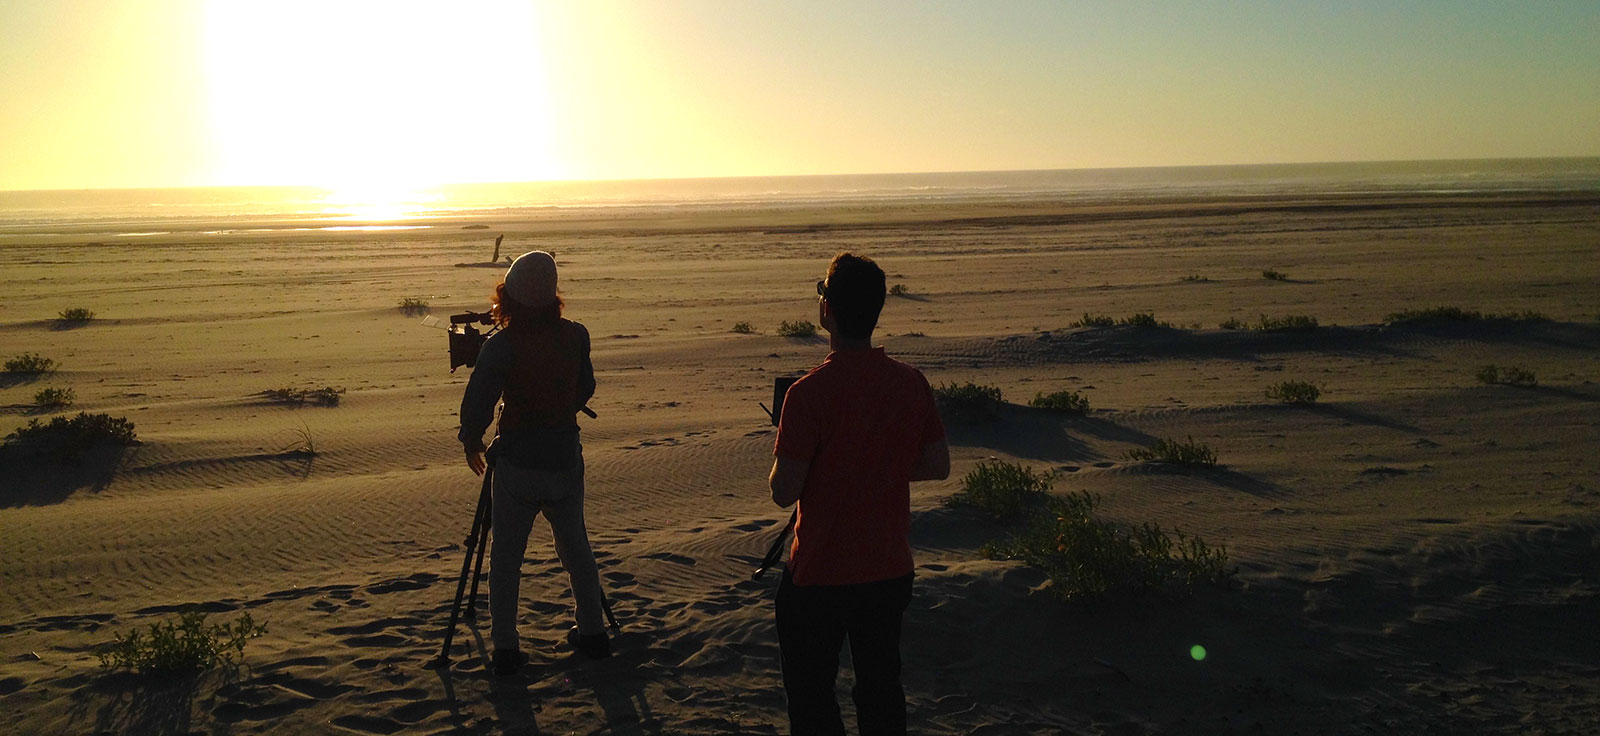 Filming sunset on long beach